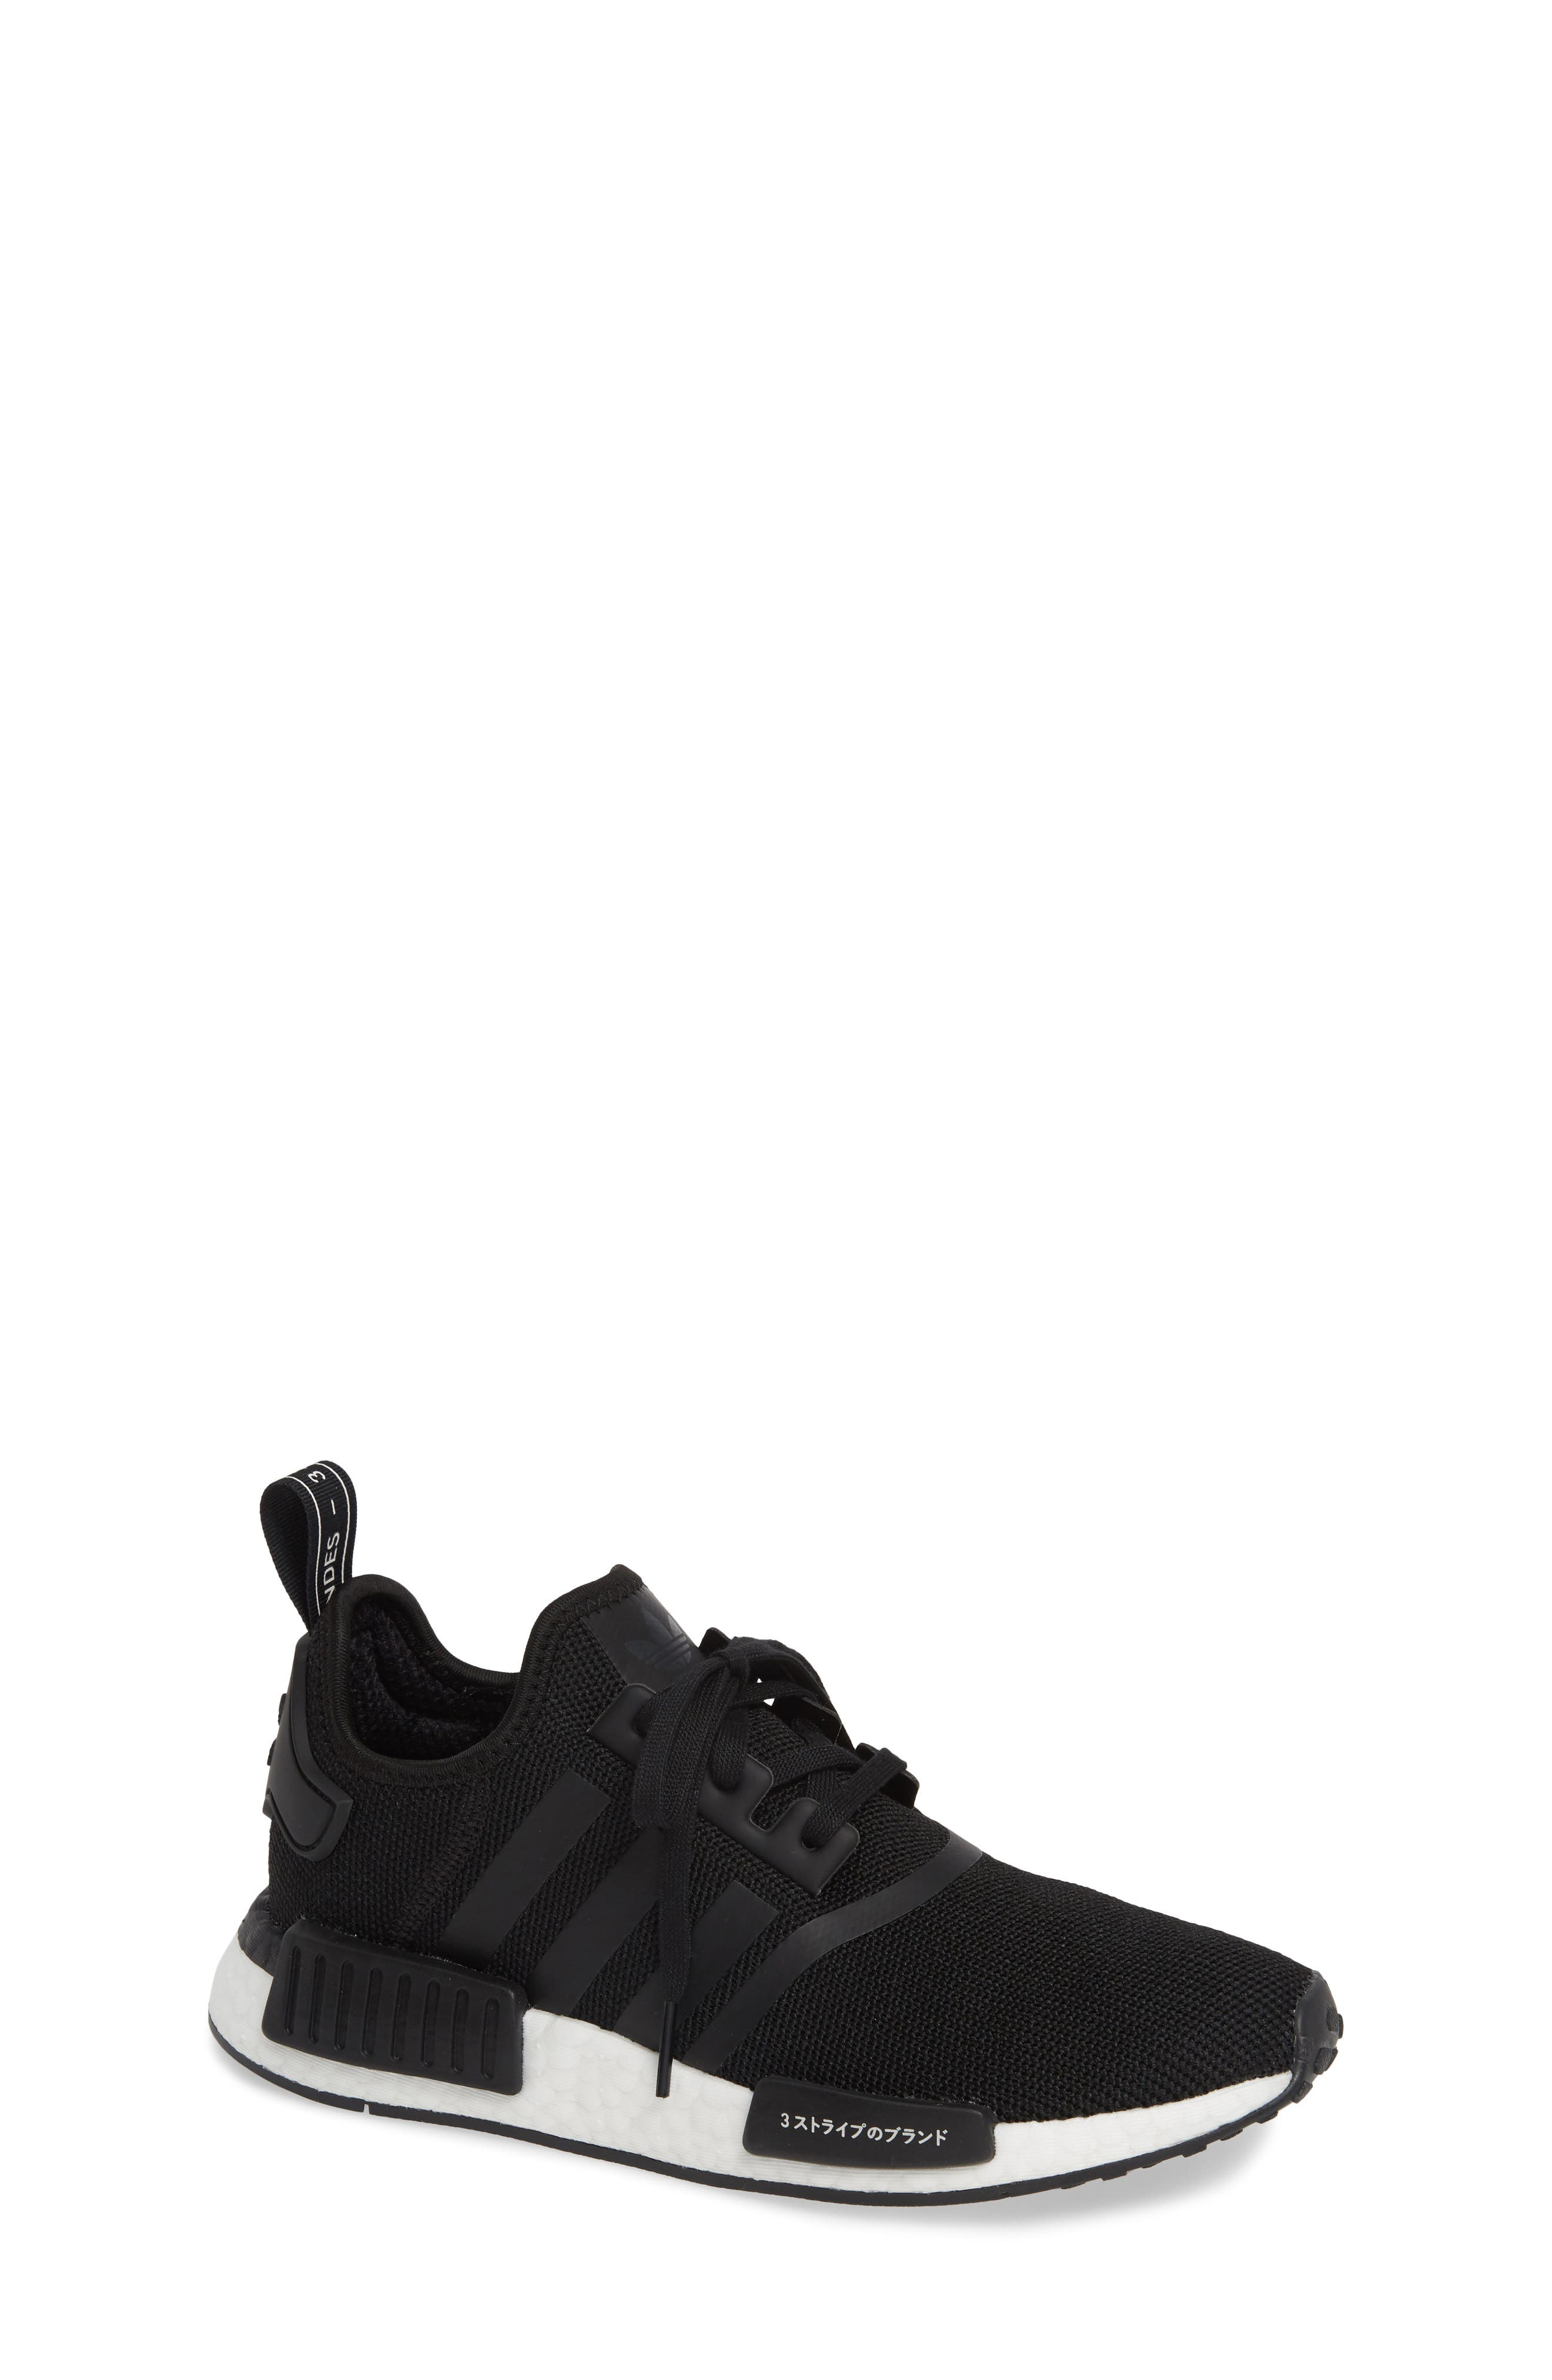 ADIDAS NMD R1 Sneaker, Main, color, CORE BLACK/ BLACK/ ORCHID TINT